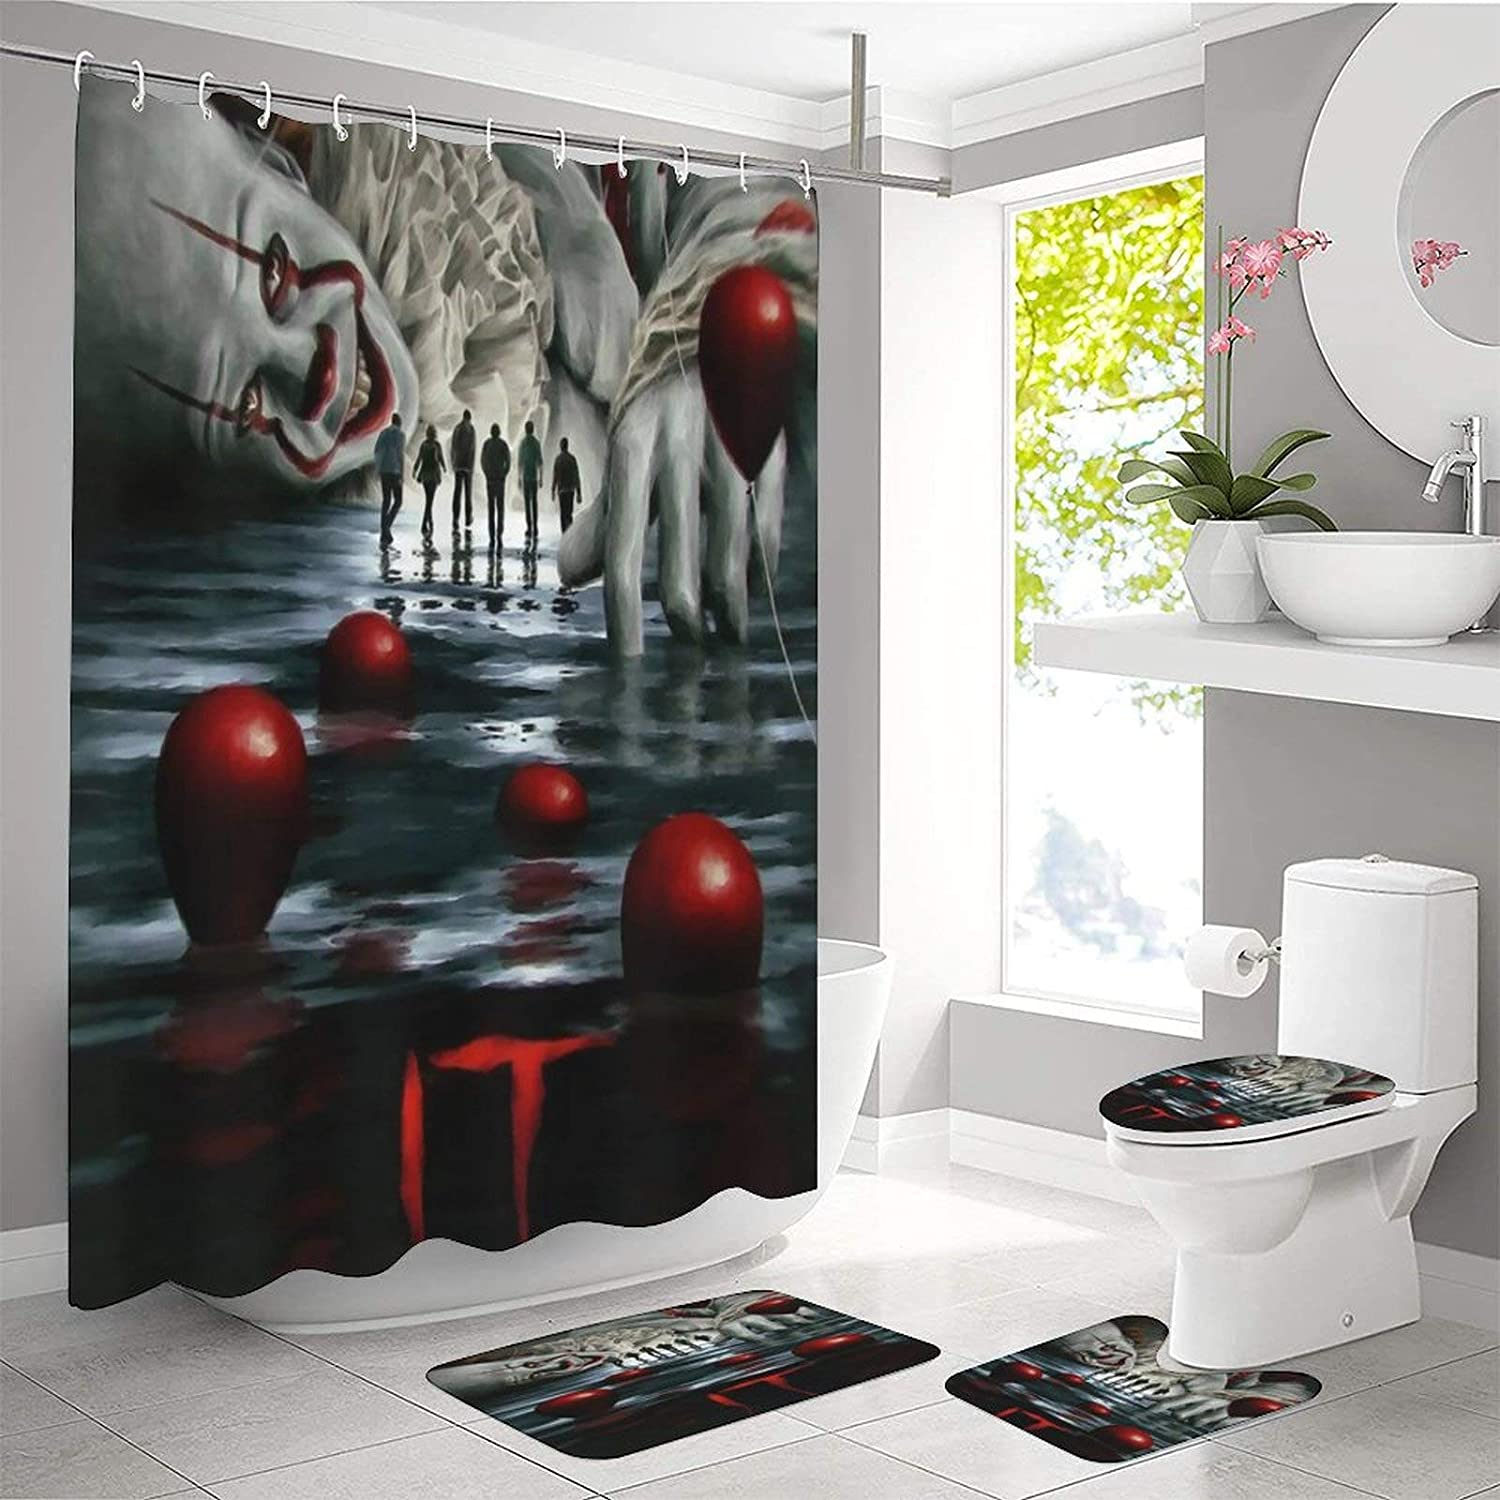 4 Piece New High quality product type Penn-ywise Shower Curtain with Sets Non-Slip Toilet Rug